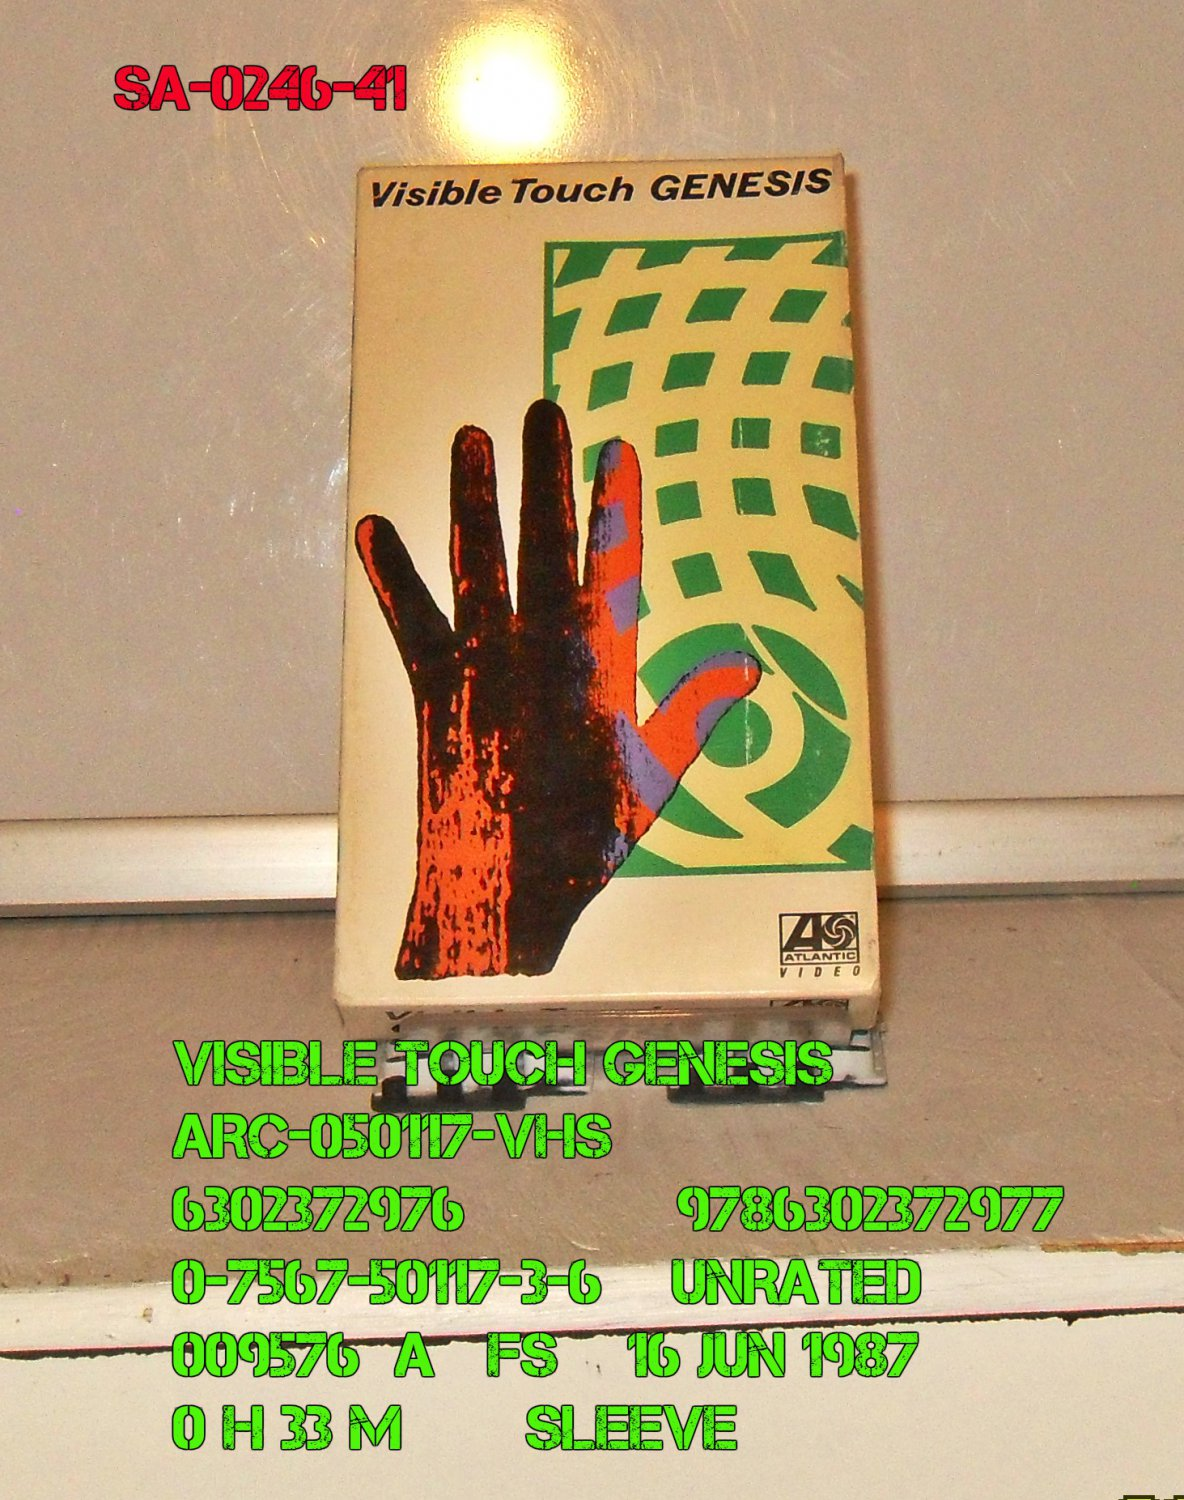 VHS - VISIBLE TOUCH GENESIS